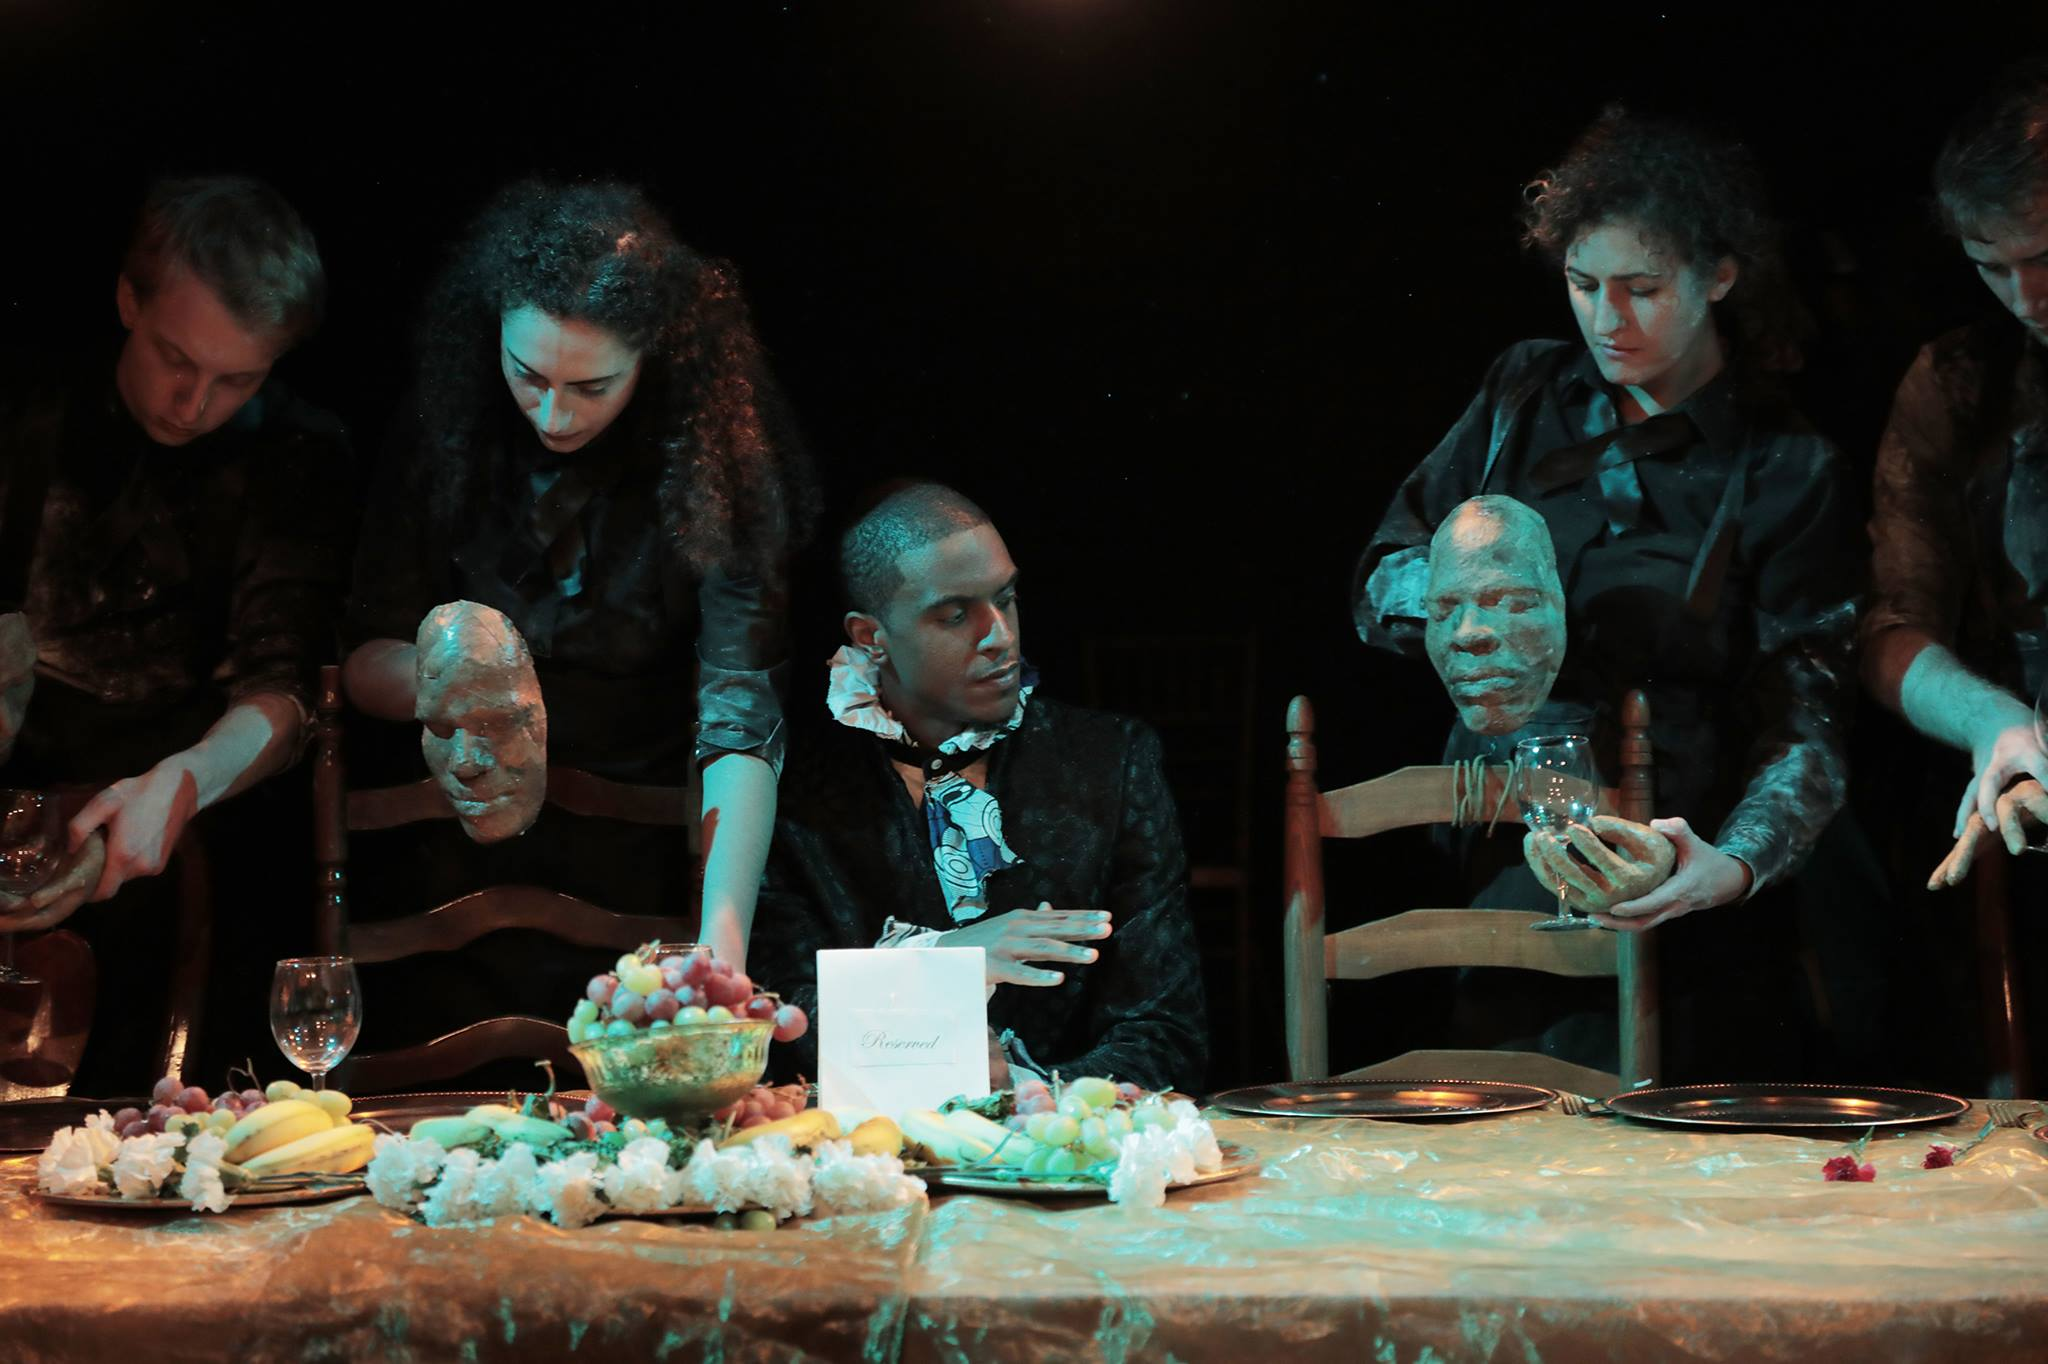 various puppet faces manipulated at a dinner table with a man in the middle sitting and eating next to empty chairs